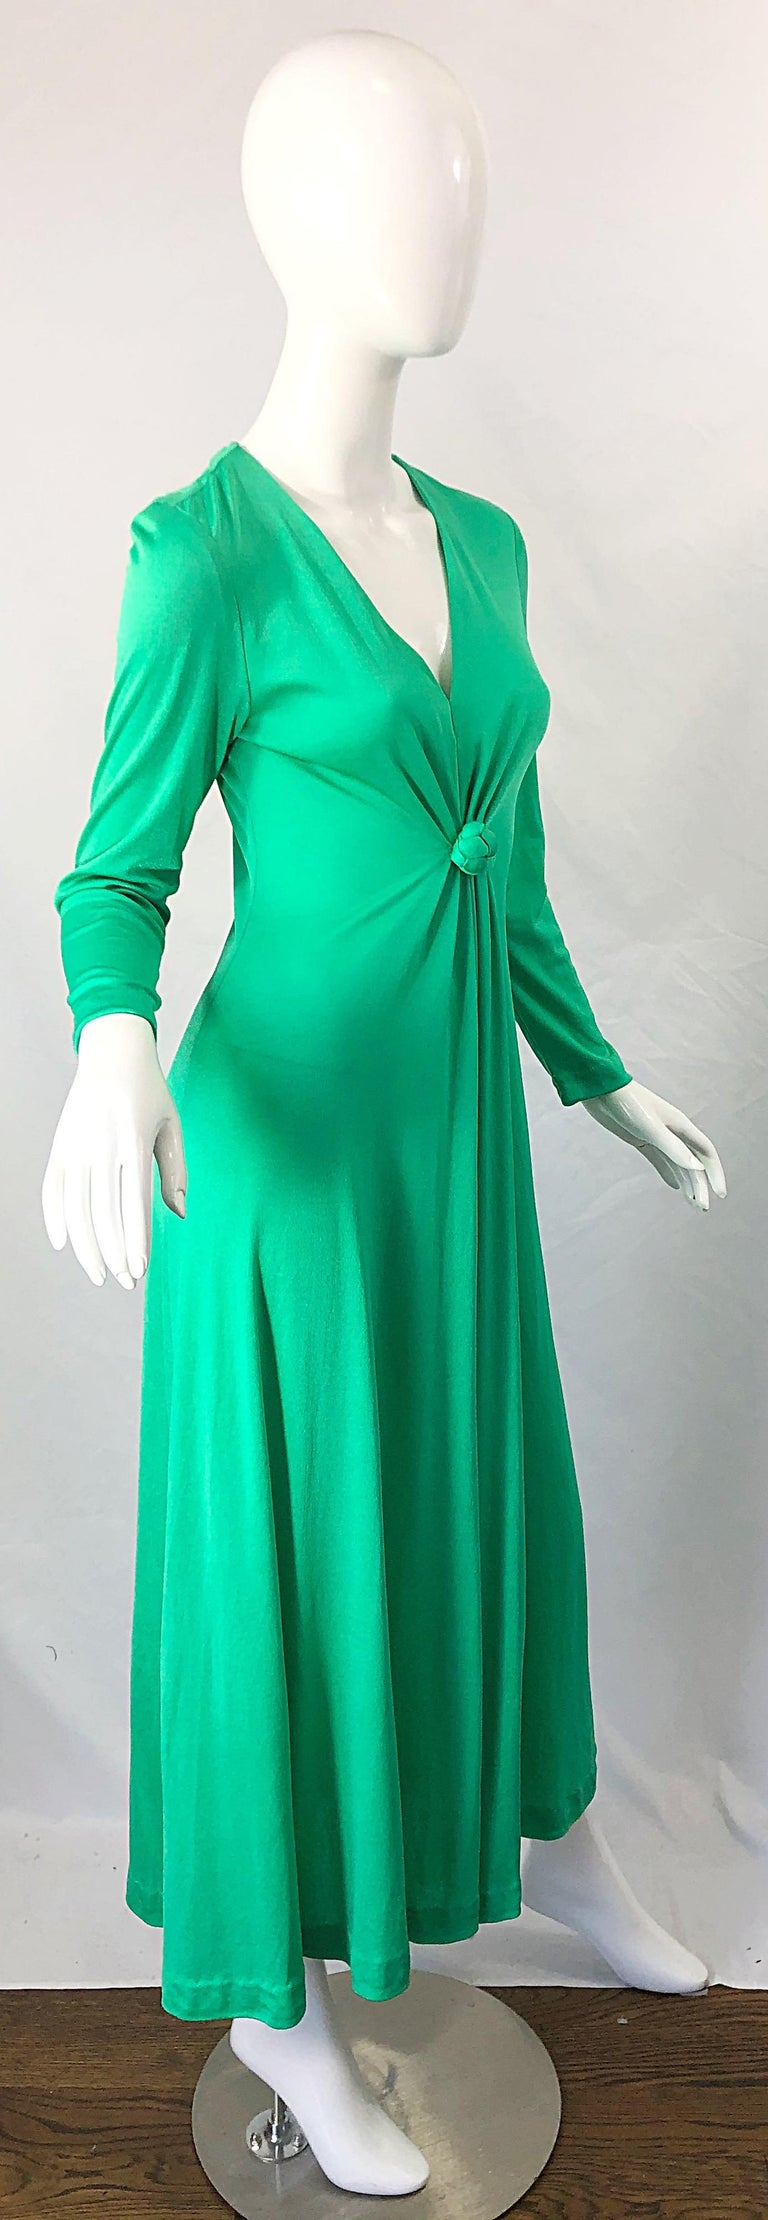 1970s Fredrick's of Hollywood Kelly Green Vintage Jersey 70s Maxi Dress For Sale 6